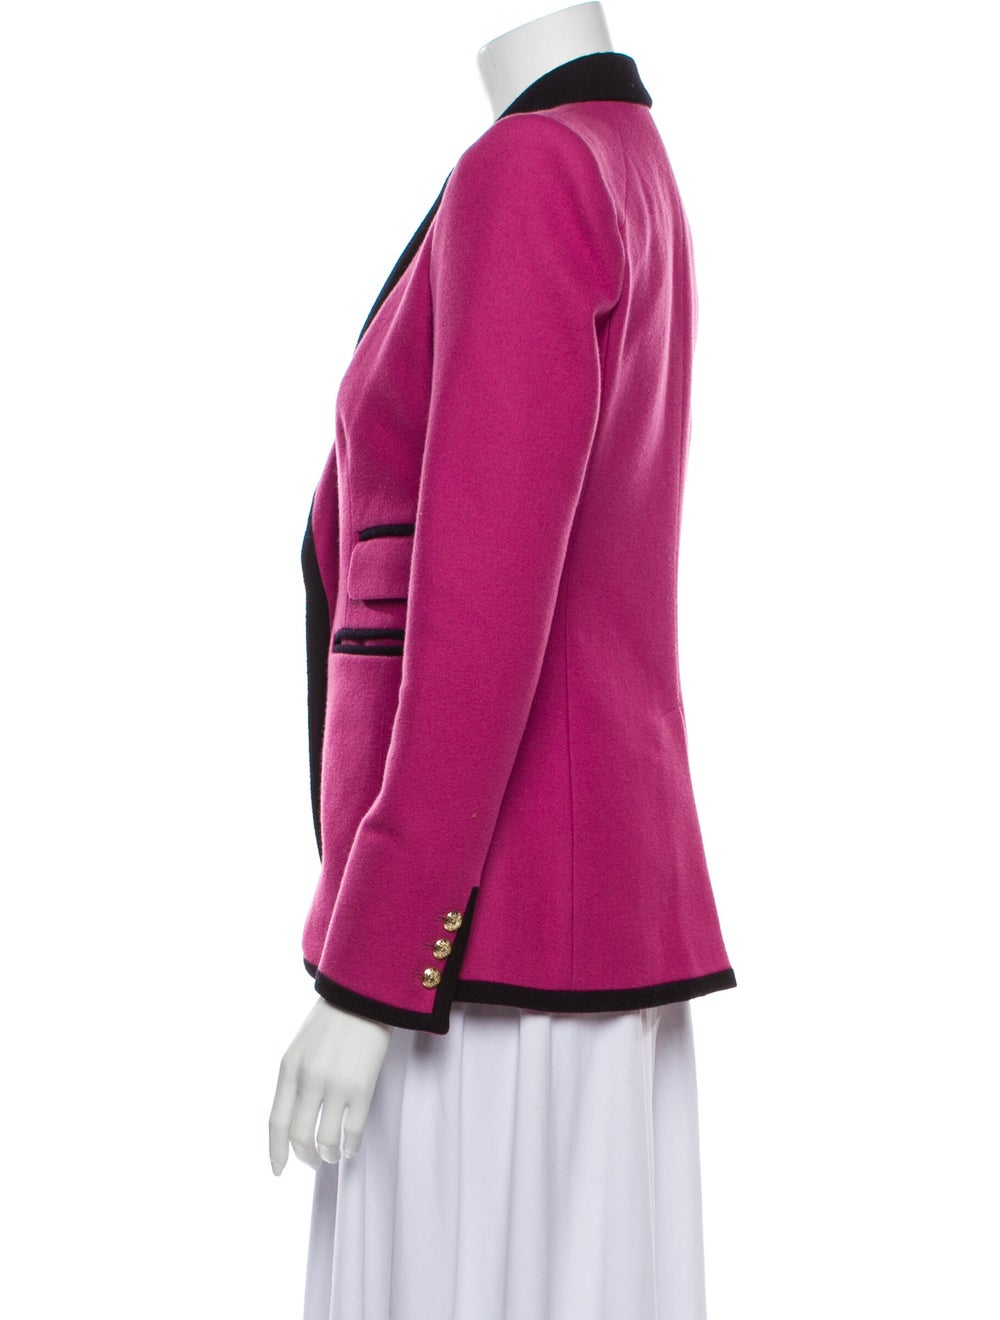 Juicy Couture Blazer Pink - image 2